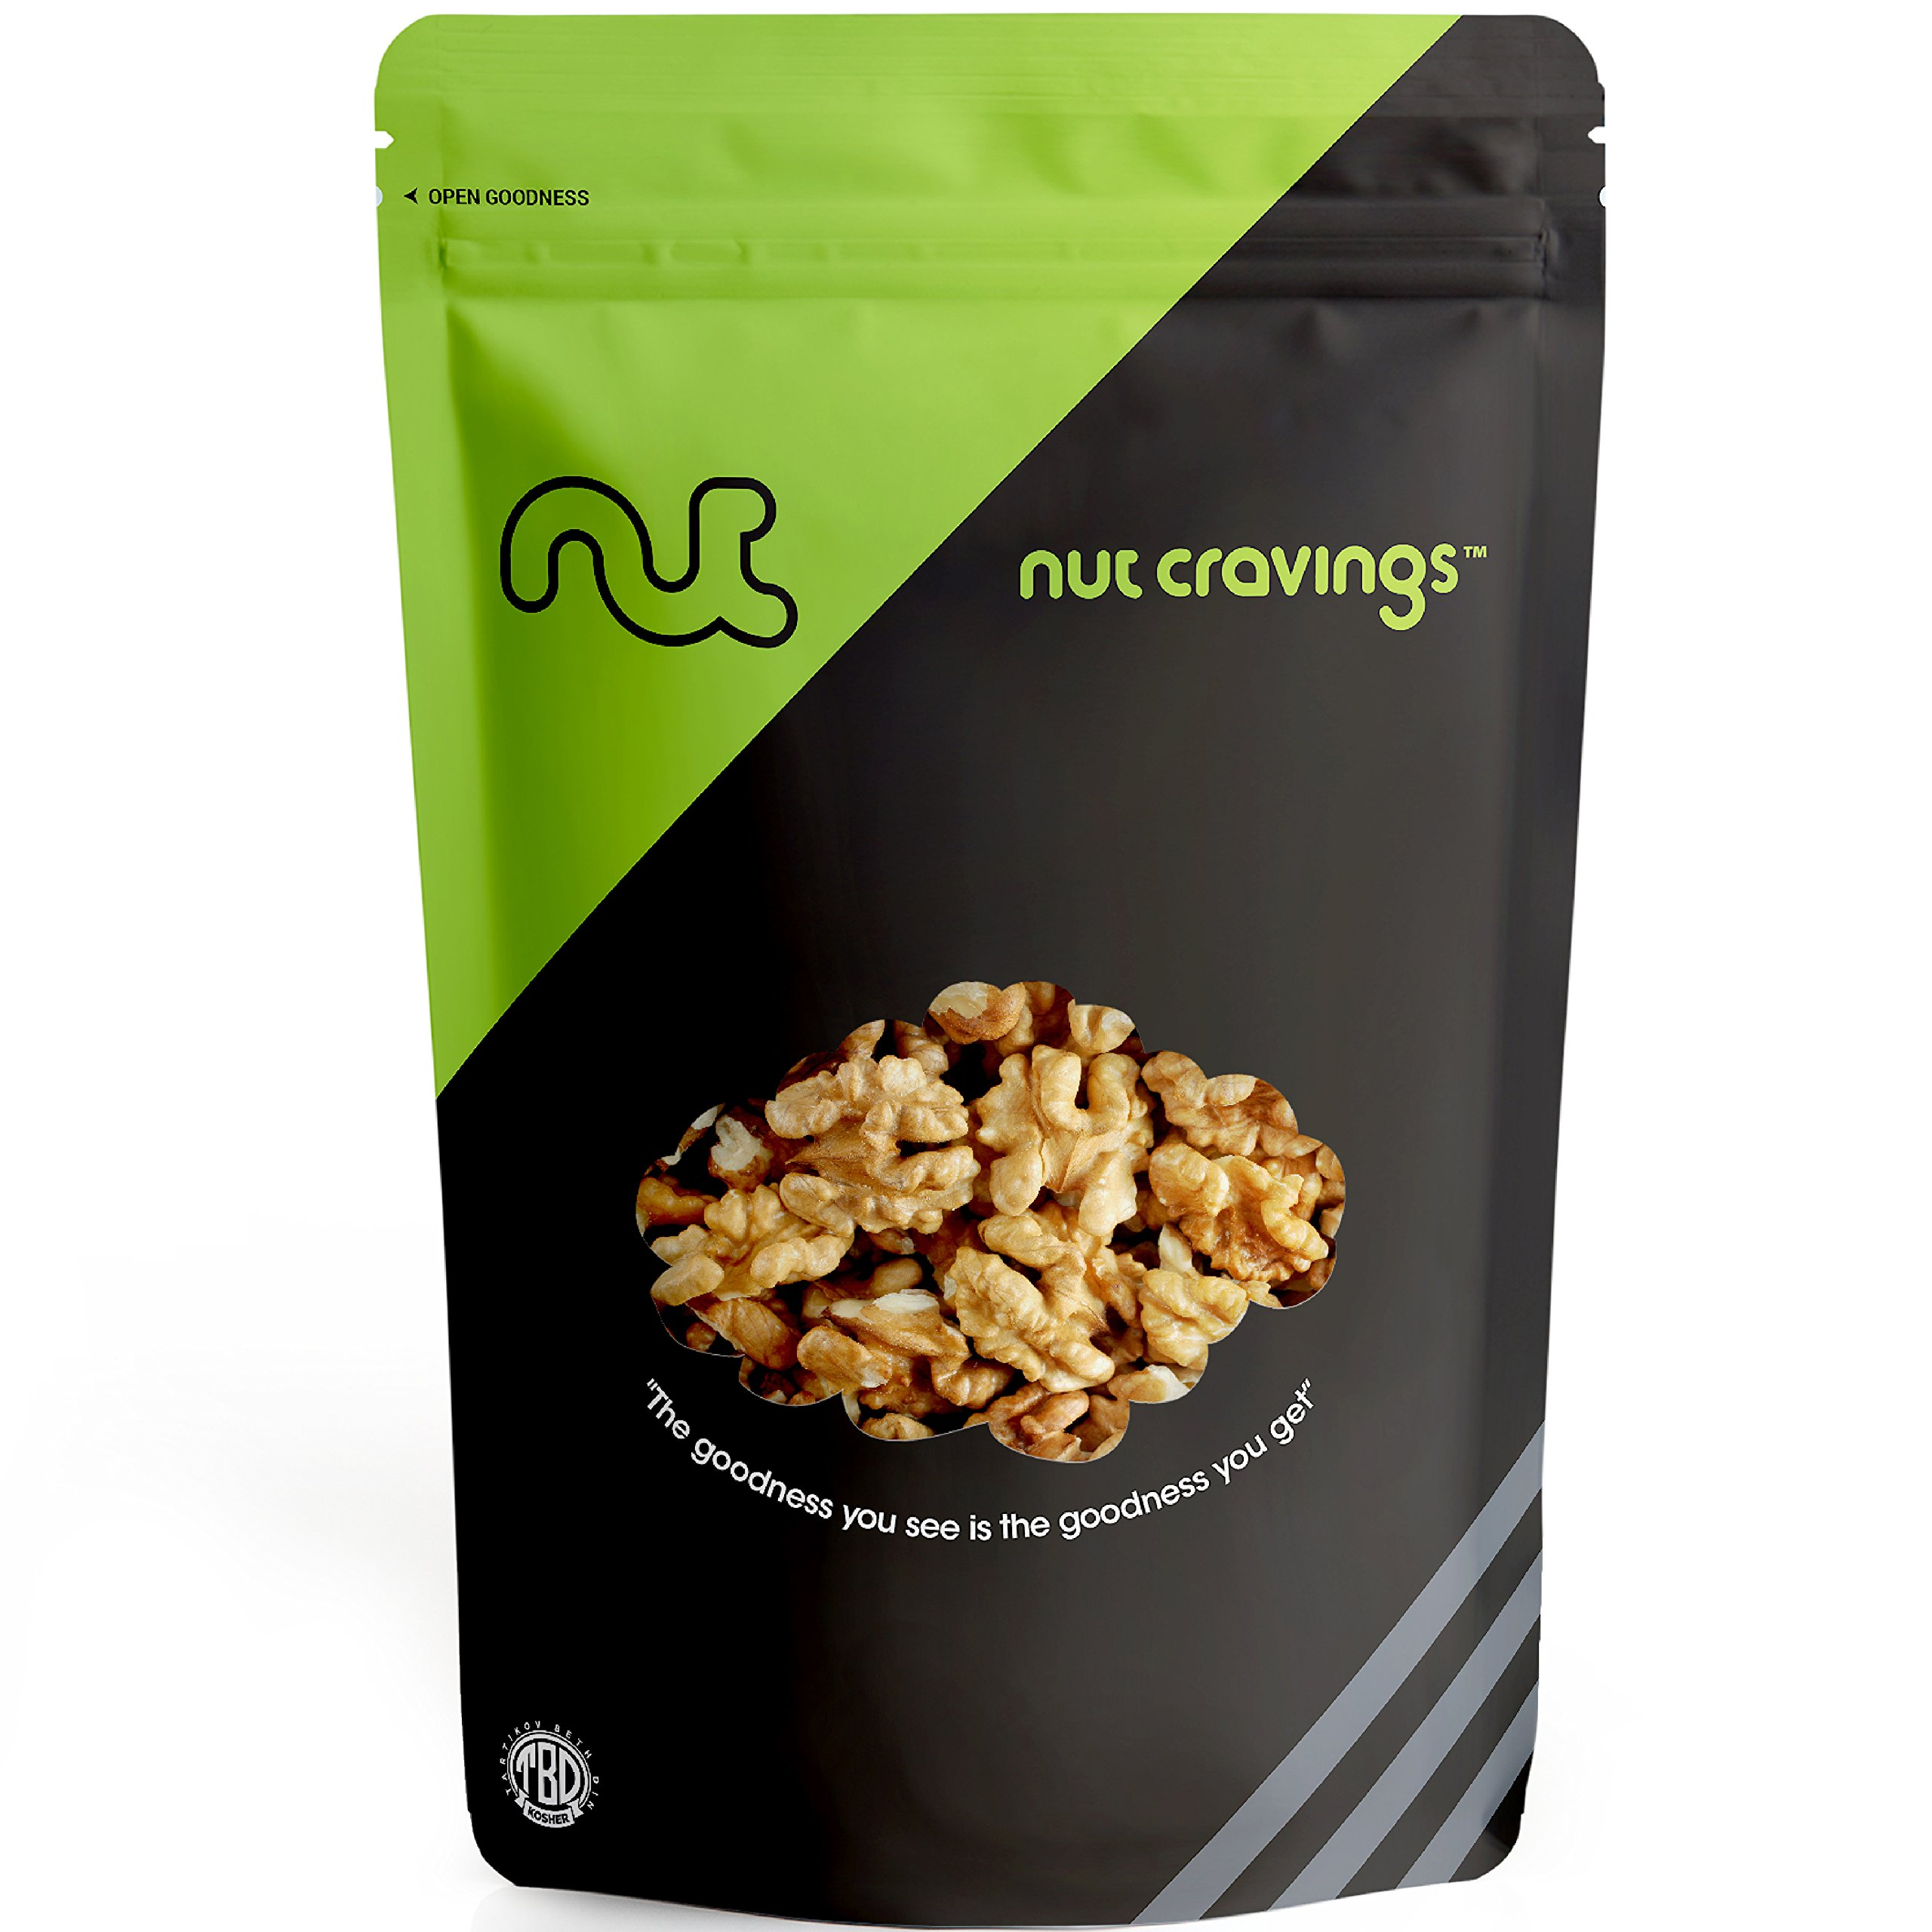 Nut Cravings - California Raw Walnuts - 100% All Natural Shelled Halves and Pieces - SAMPLER SIZE by Nut Cravings